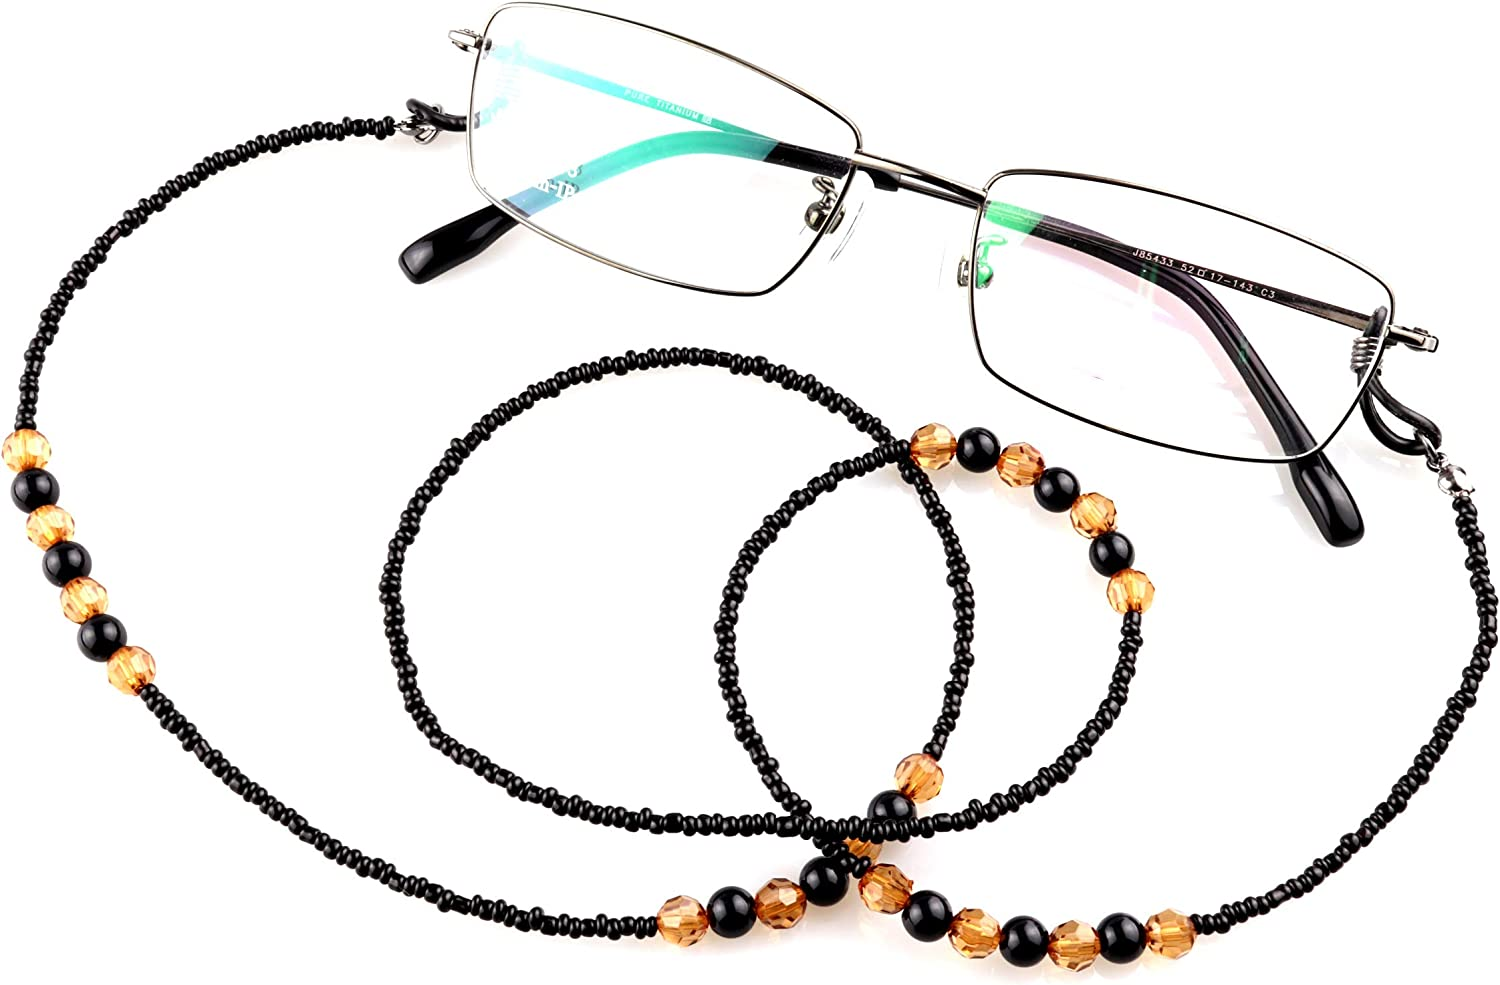 Fits All Eyeglasses Types B029 70cm Beautiful Black Beads 2 Pack Anti-Slip Beaded Glasses Chain Retainer for Spectacles /& Sunglasses